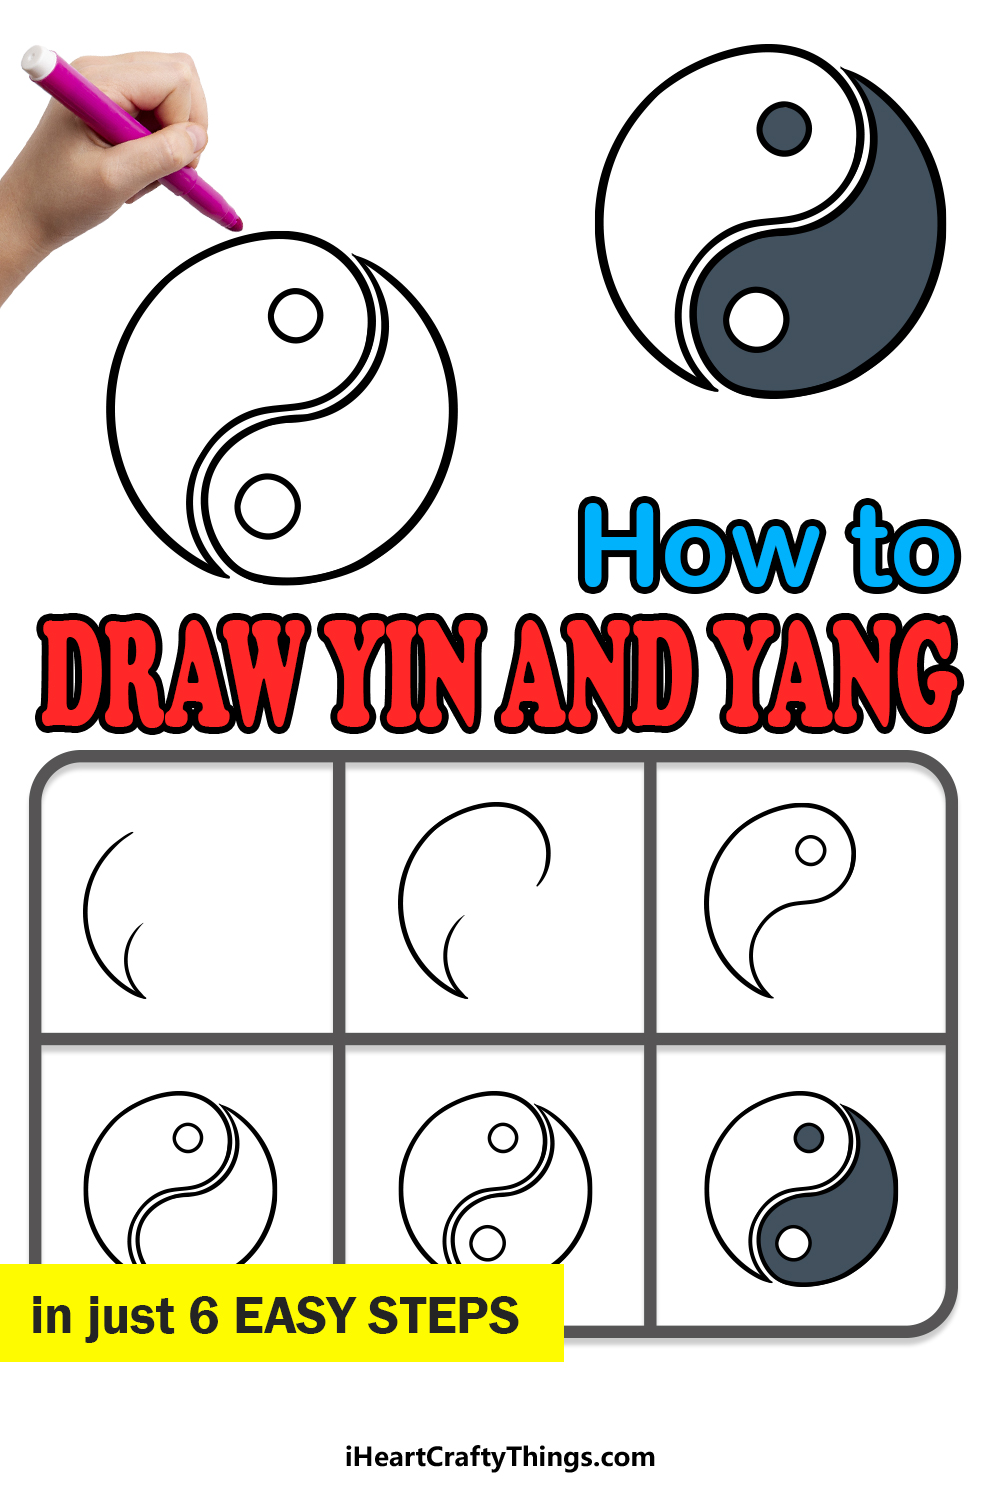 how to draw Yin and Yang in 6 easy steps